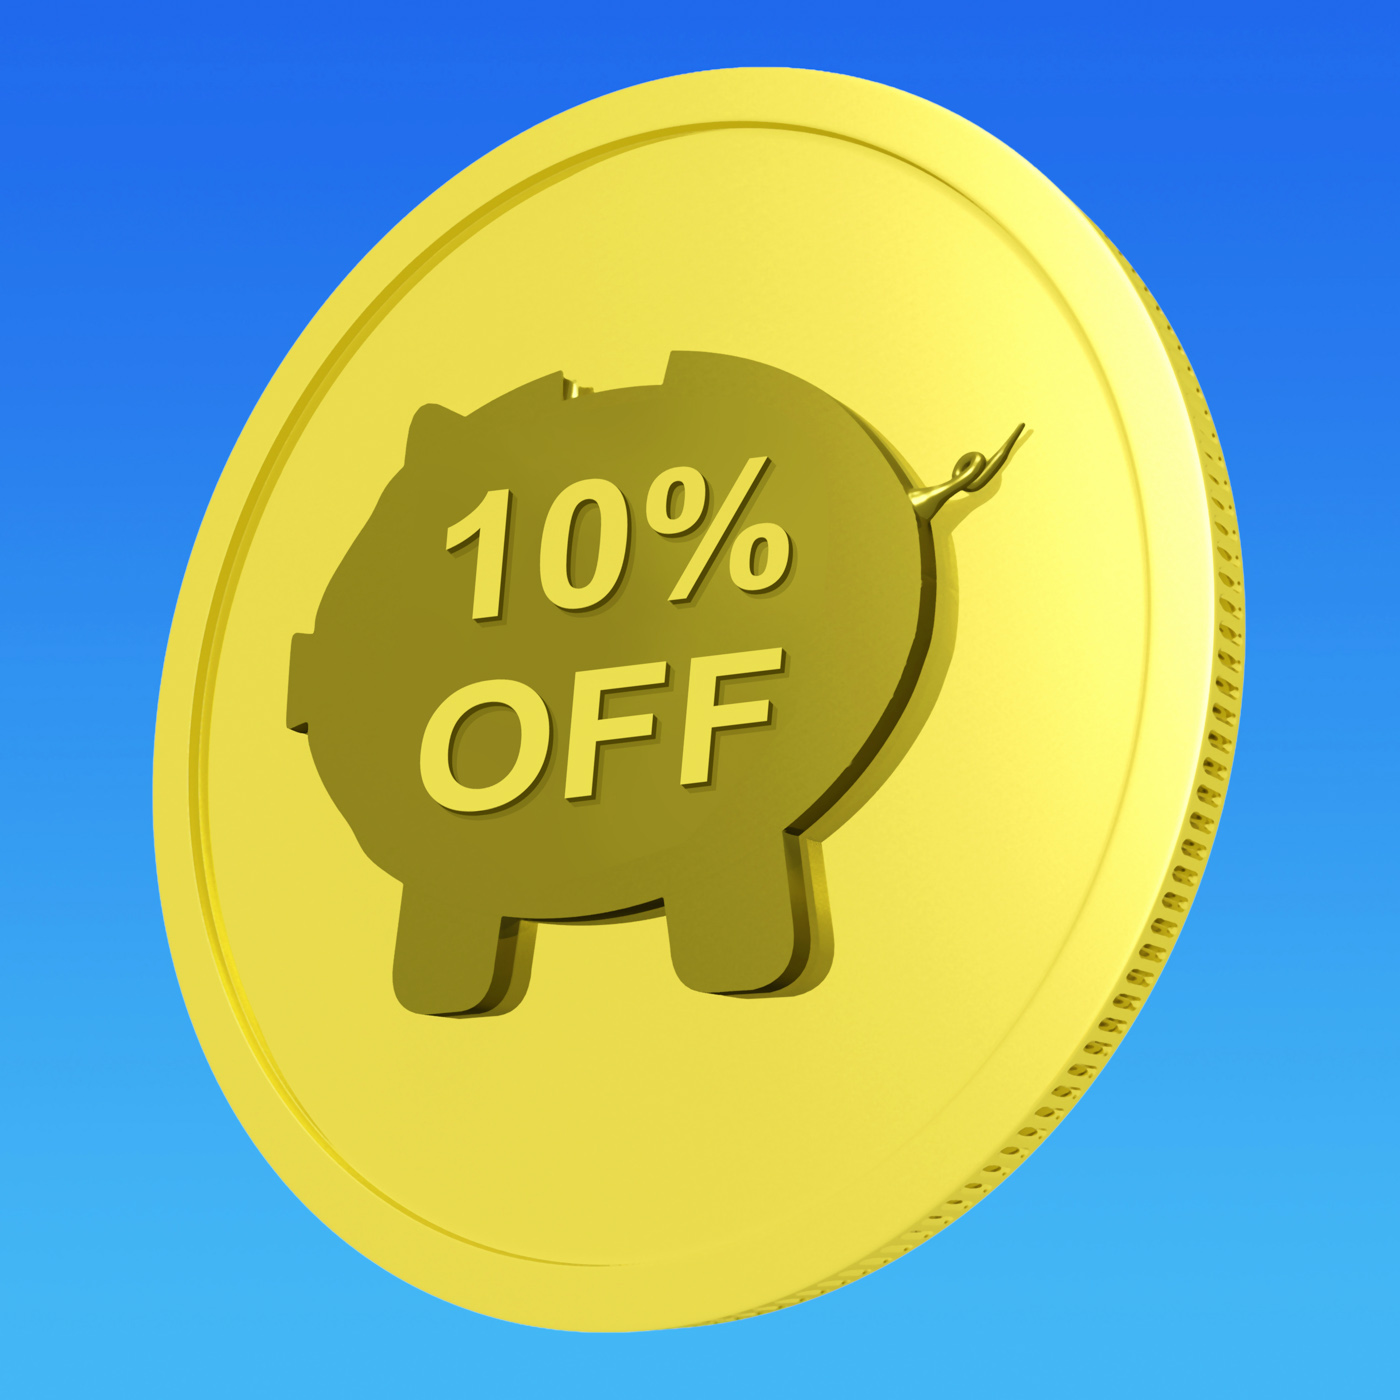 Ten percent off coin shows 10 savings and discount photo